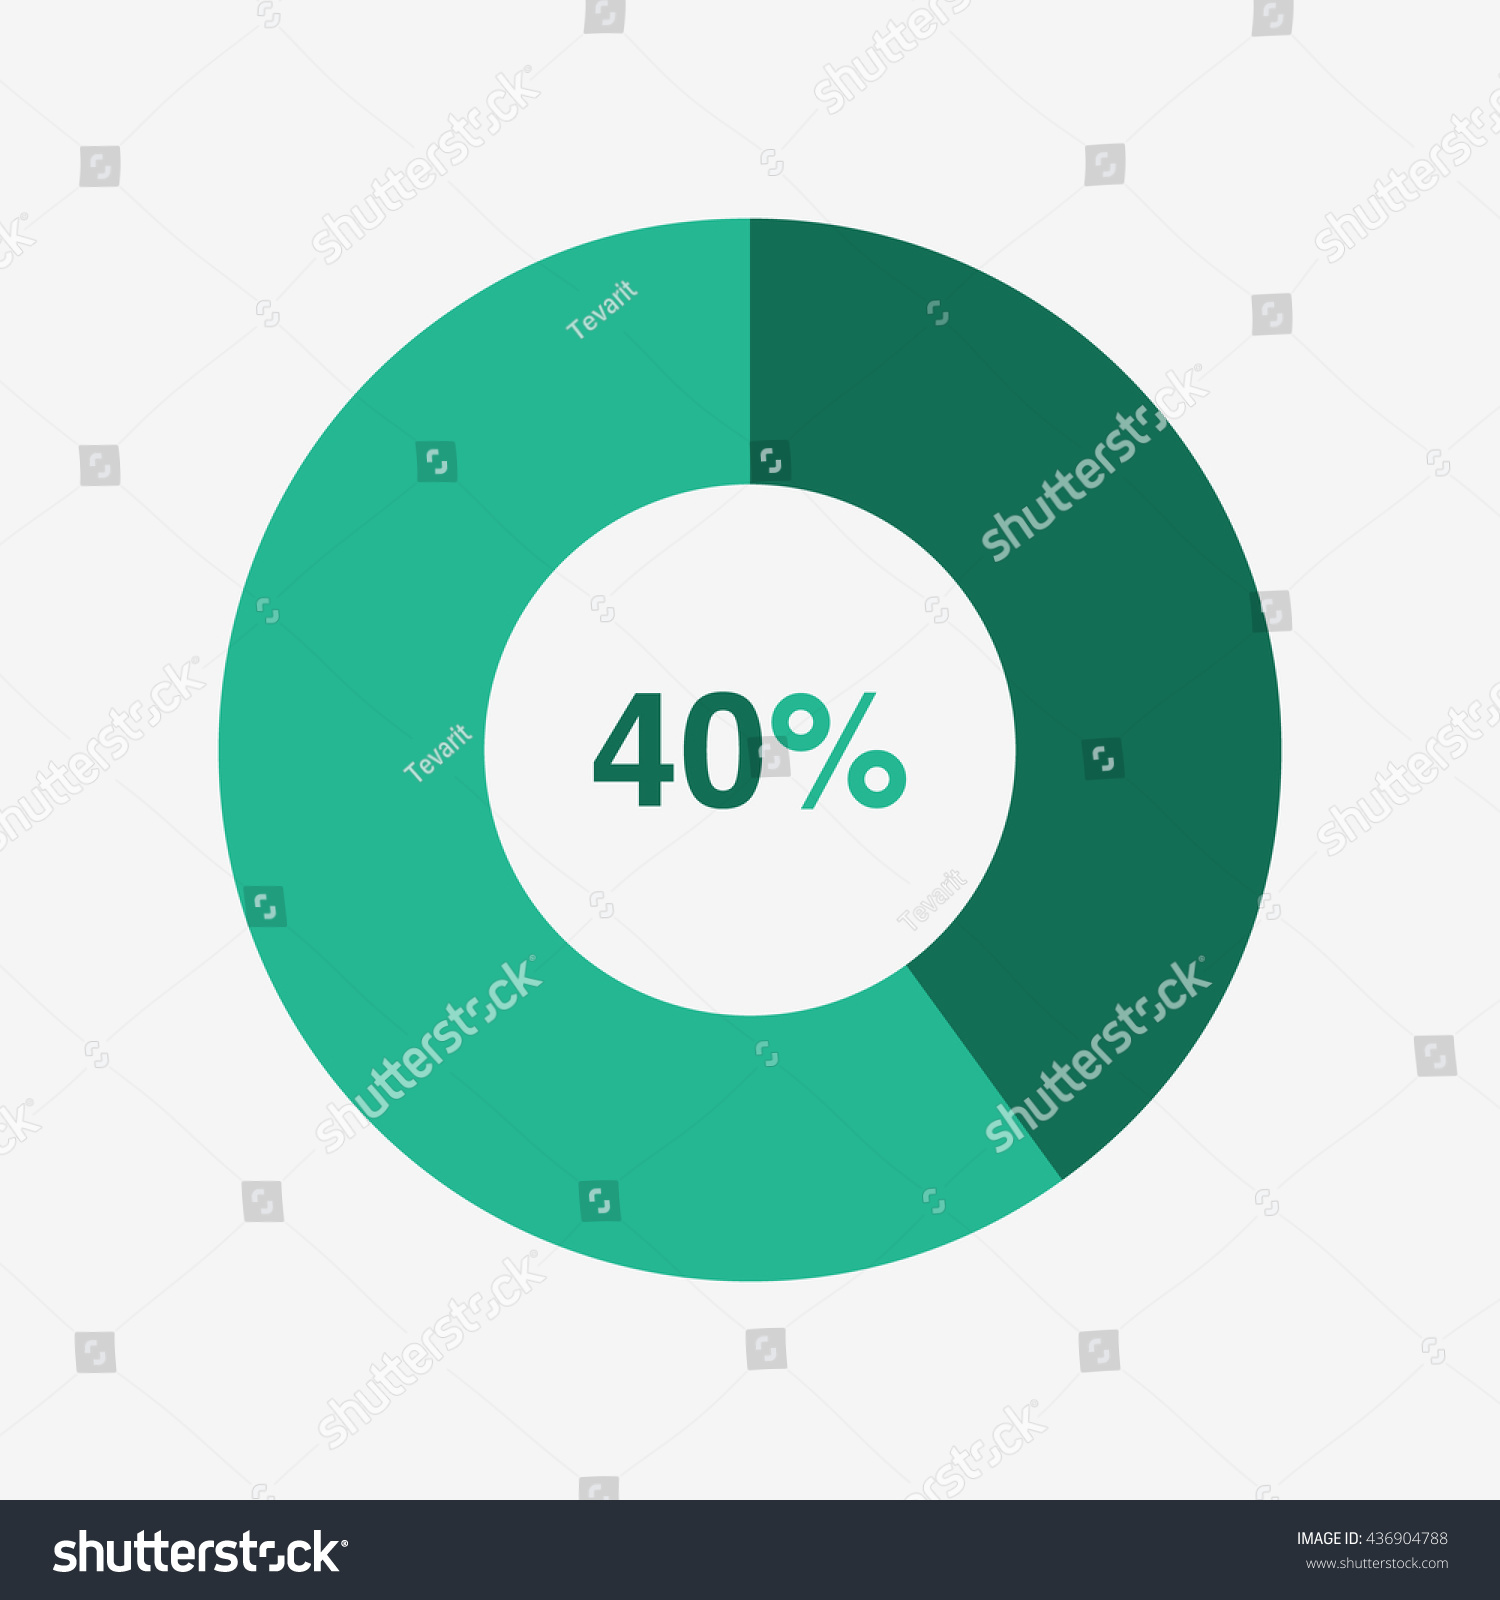 Icon Pie Green Light Green Chart Stock Vector Royalty Free